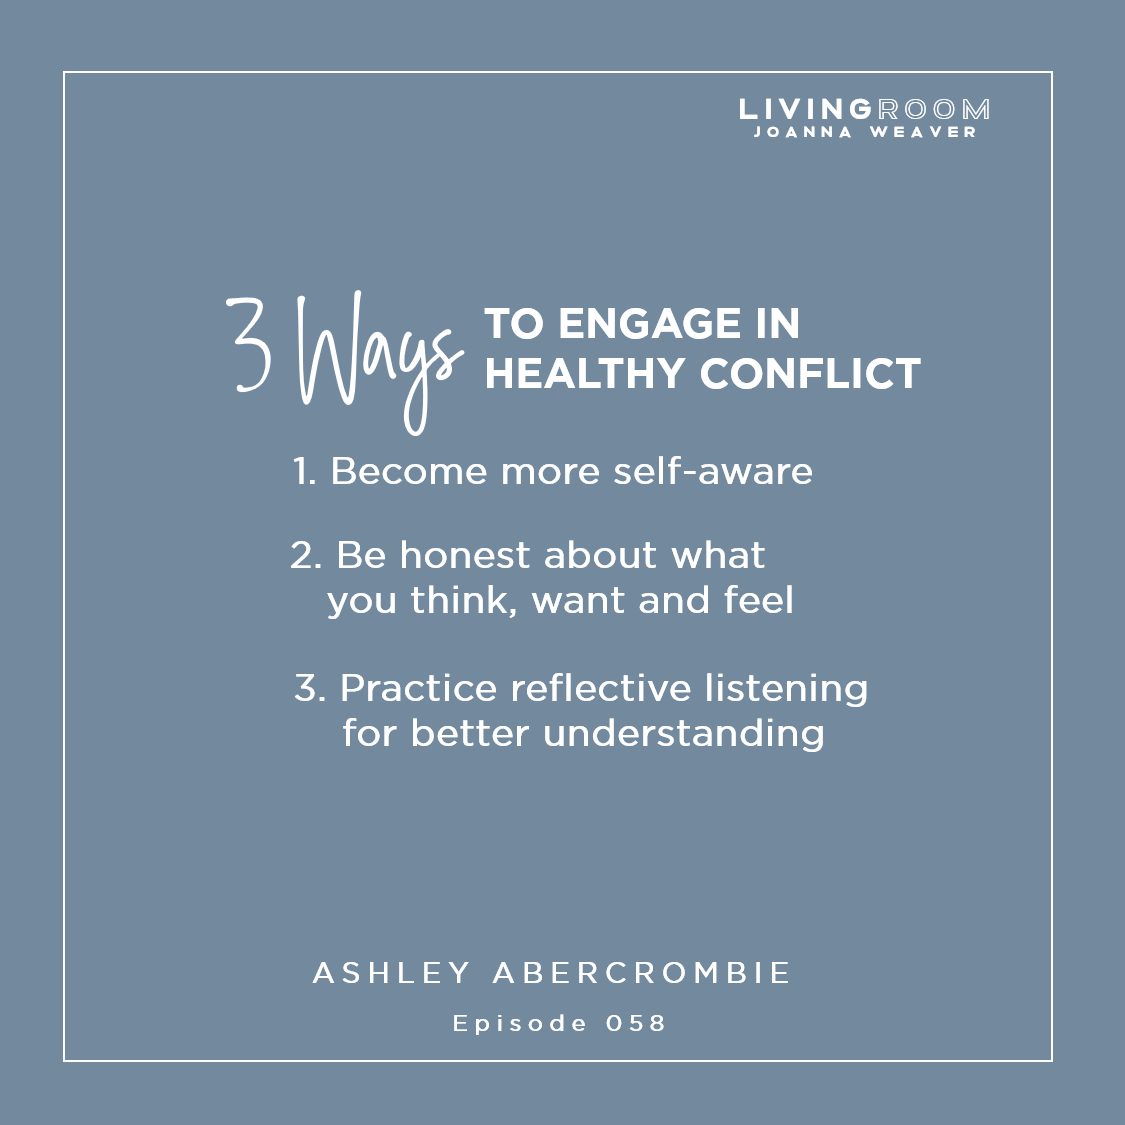 """3 Ways to Engage in Healthy Conflict"" - Ashley Abercrombie - The Living Room Podcast - Ep 058"